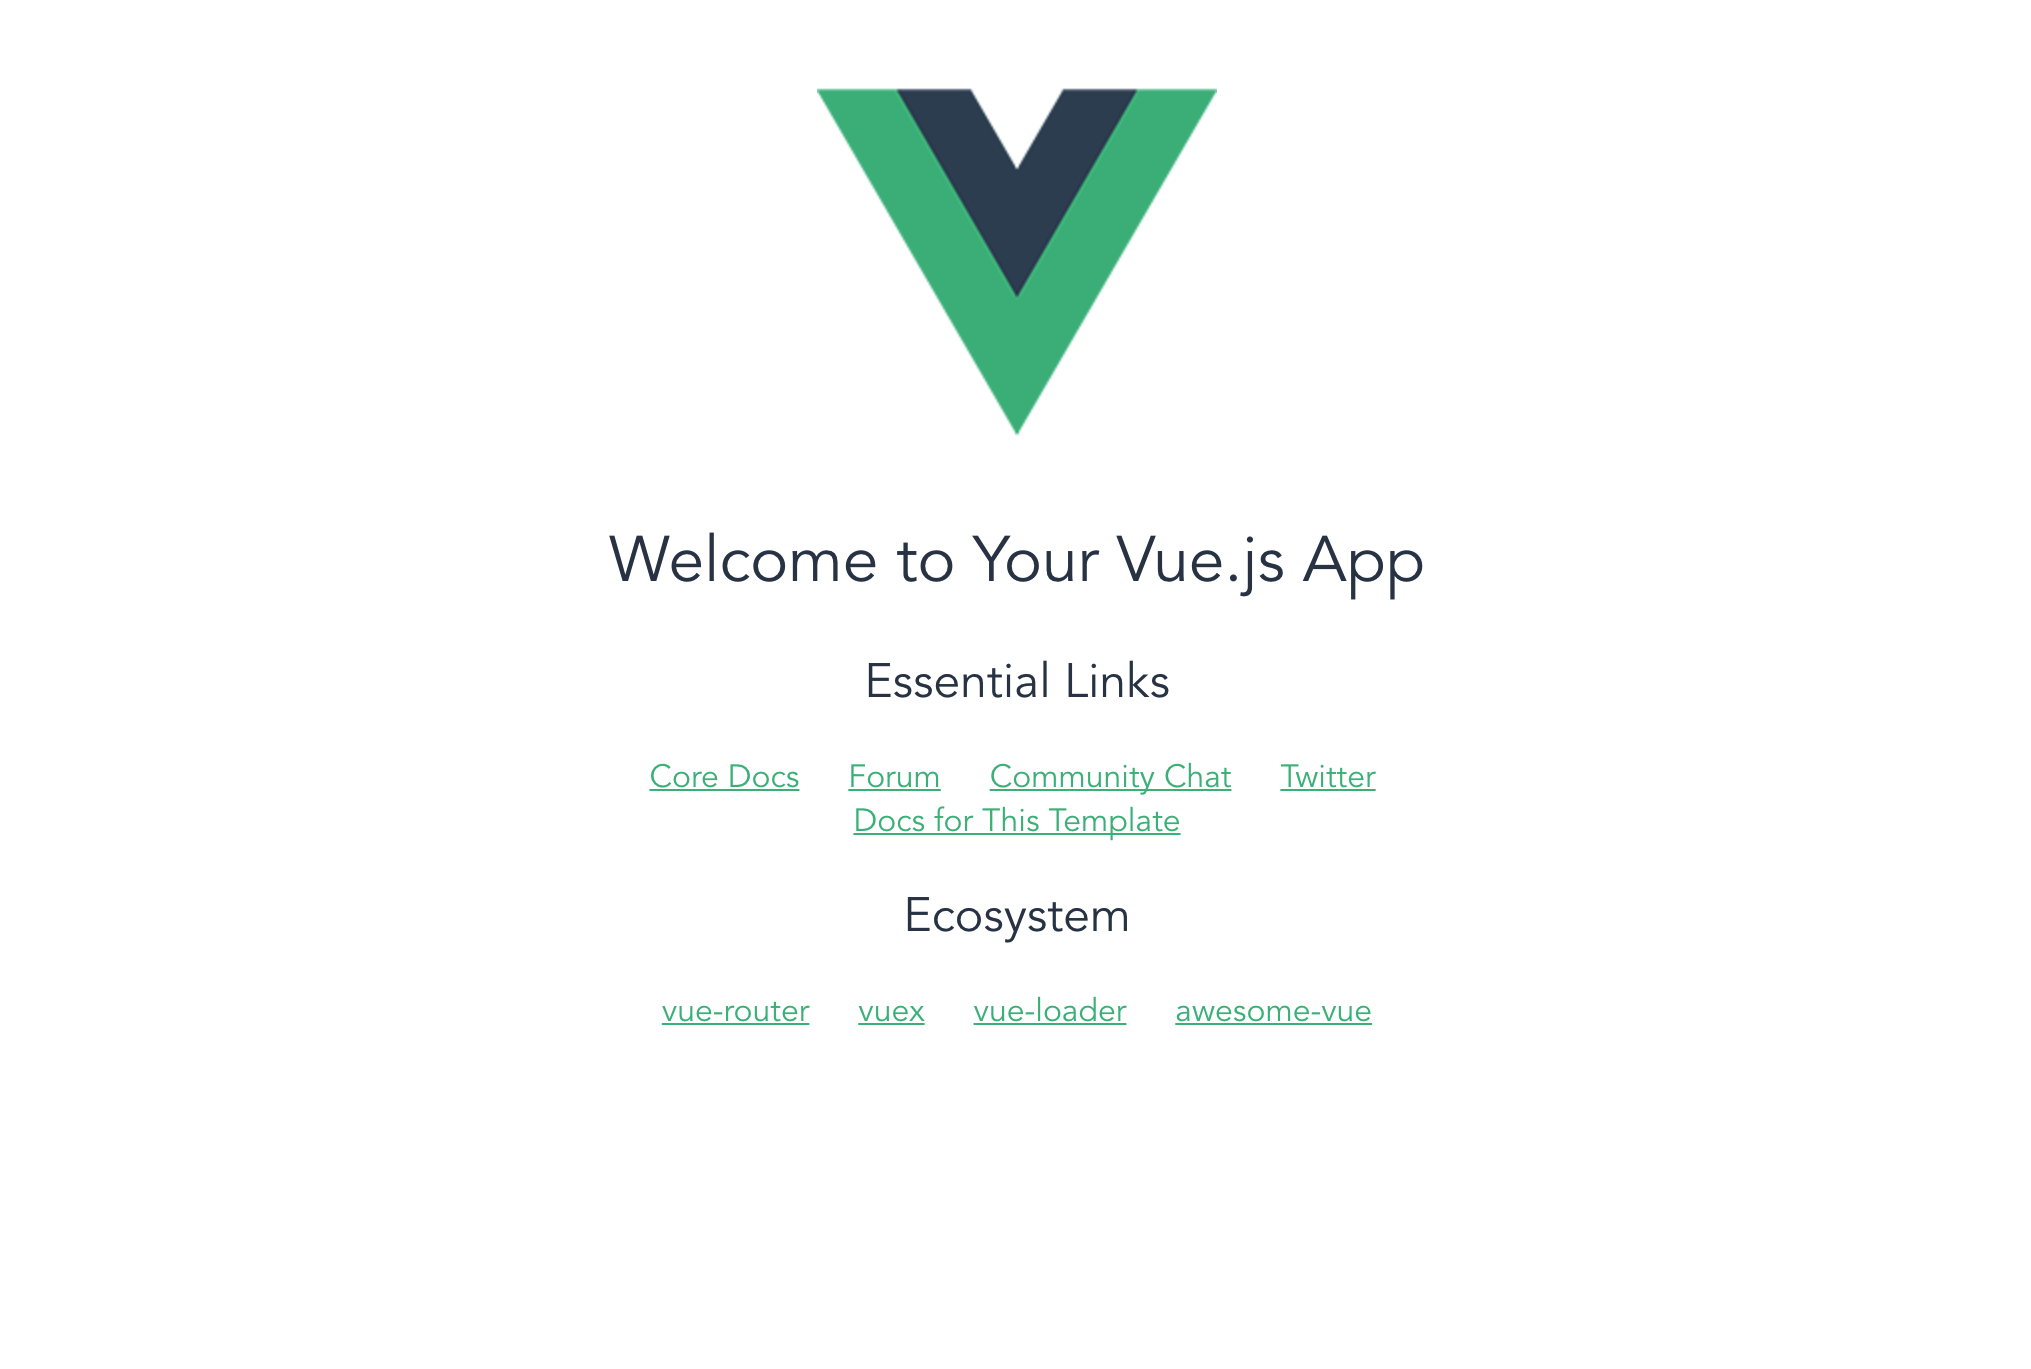 Weekend Project (Part 3): Scaffolding a Vue App with vue-cli